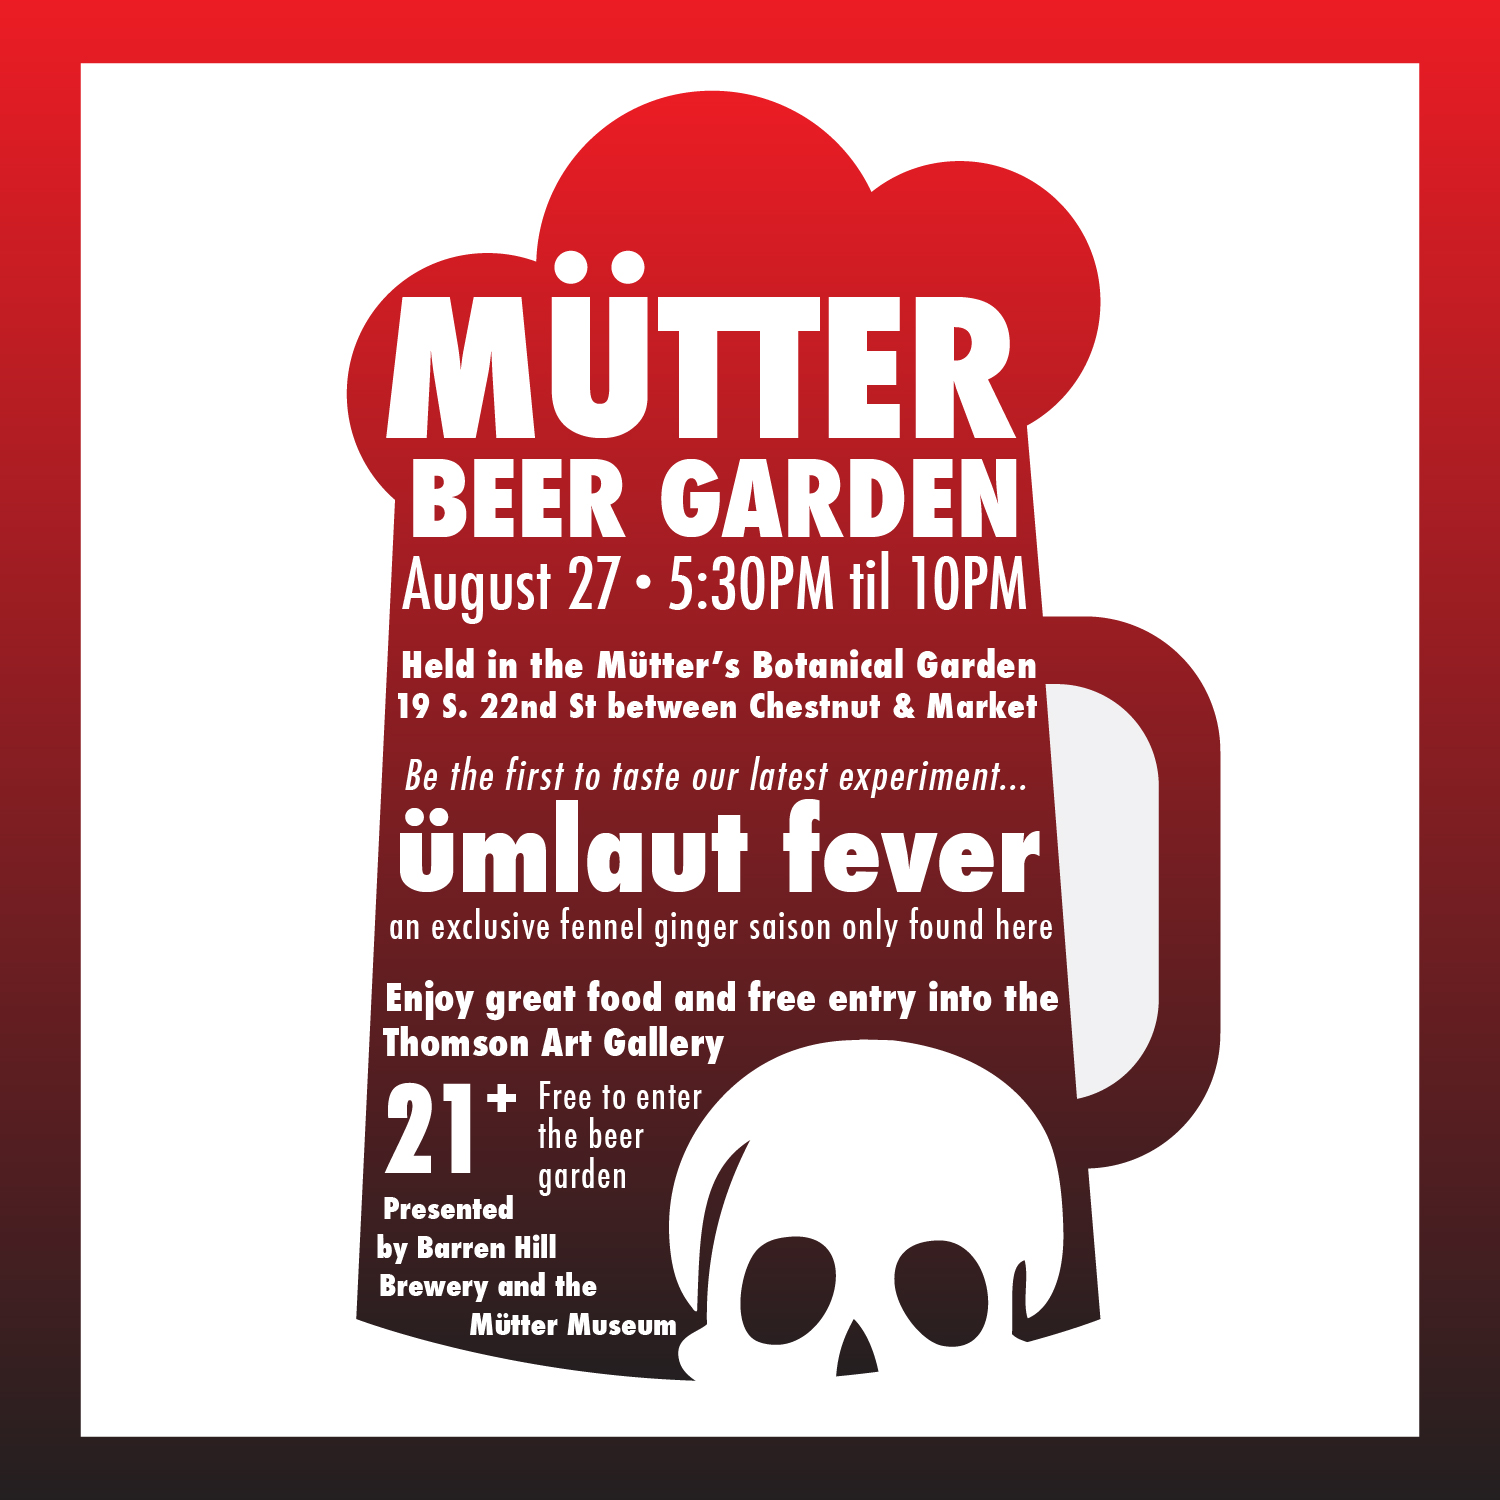 beer-garden-social-media-great-food-new